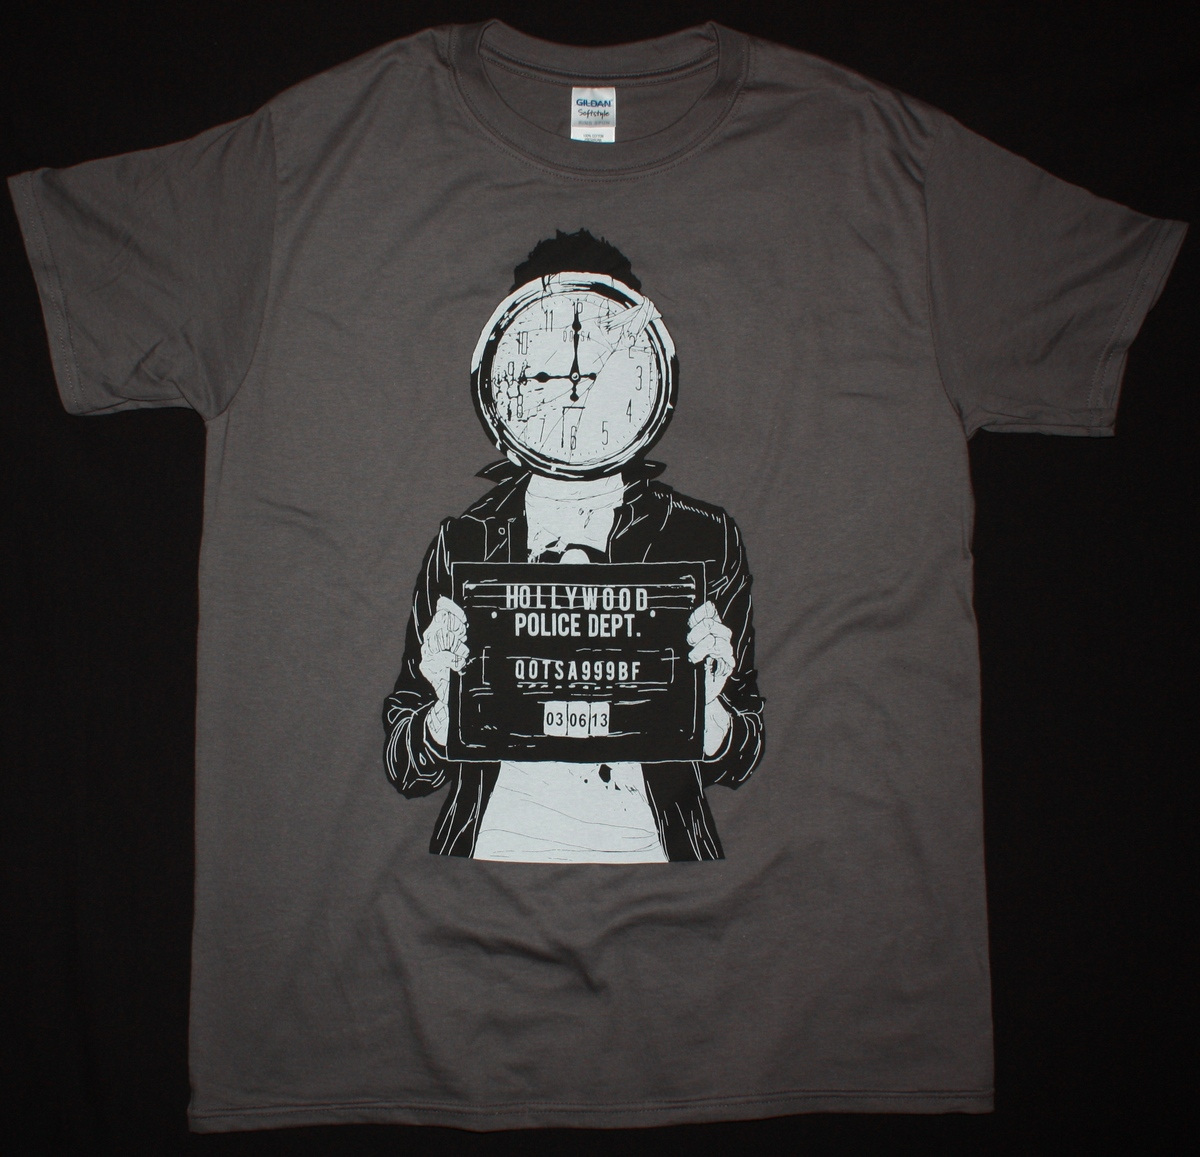 QUEENS OF THE STONE AGE MUGSHOT NEW GREY T-SHIRT